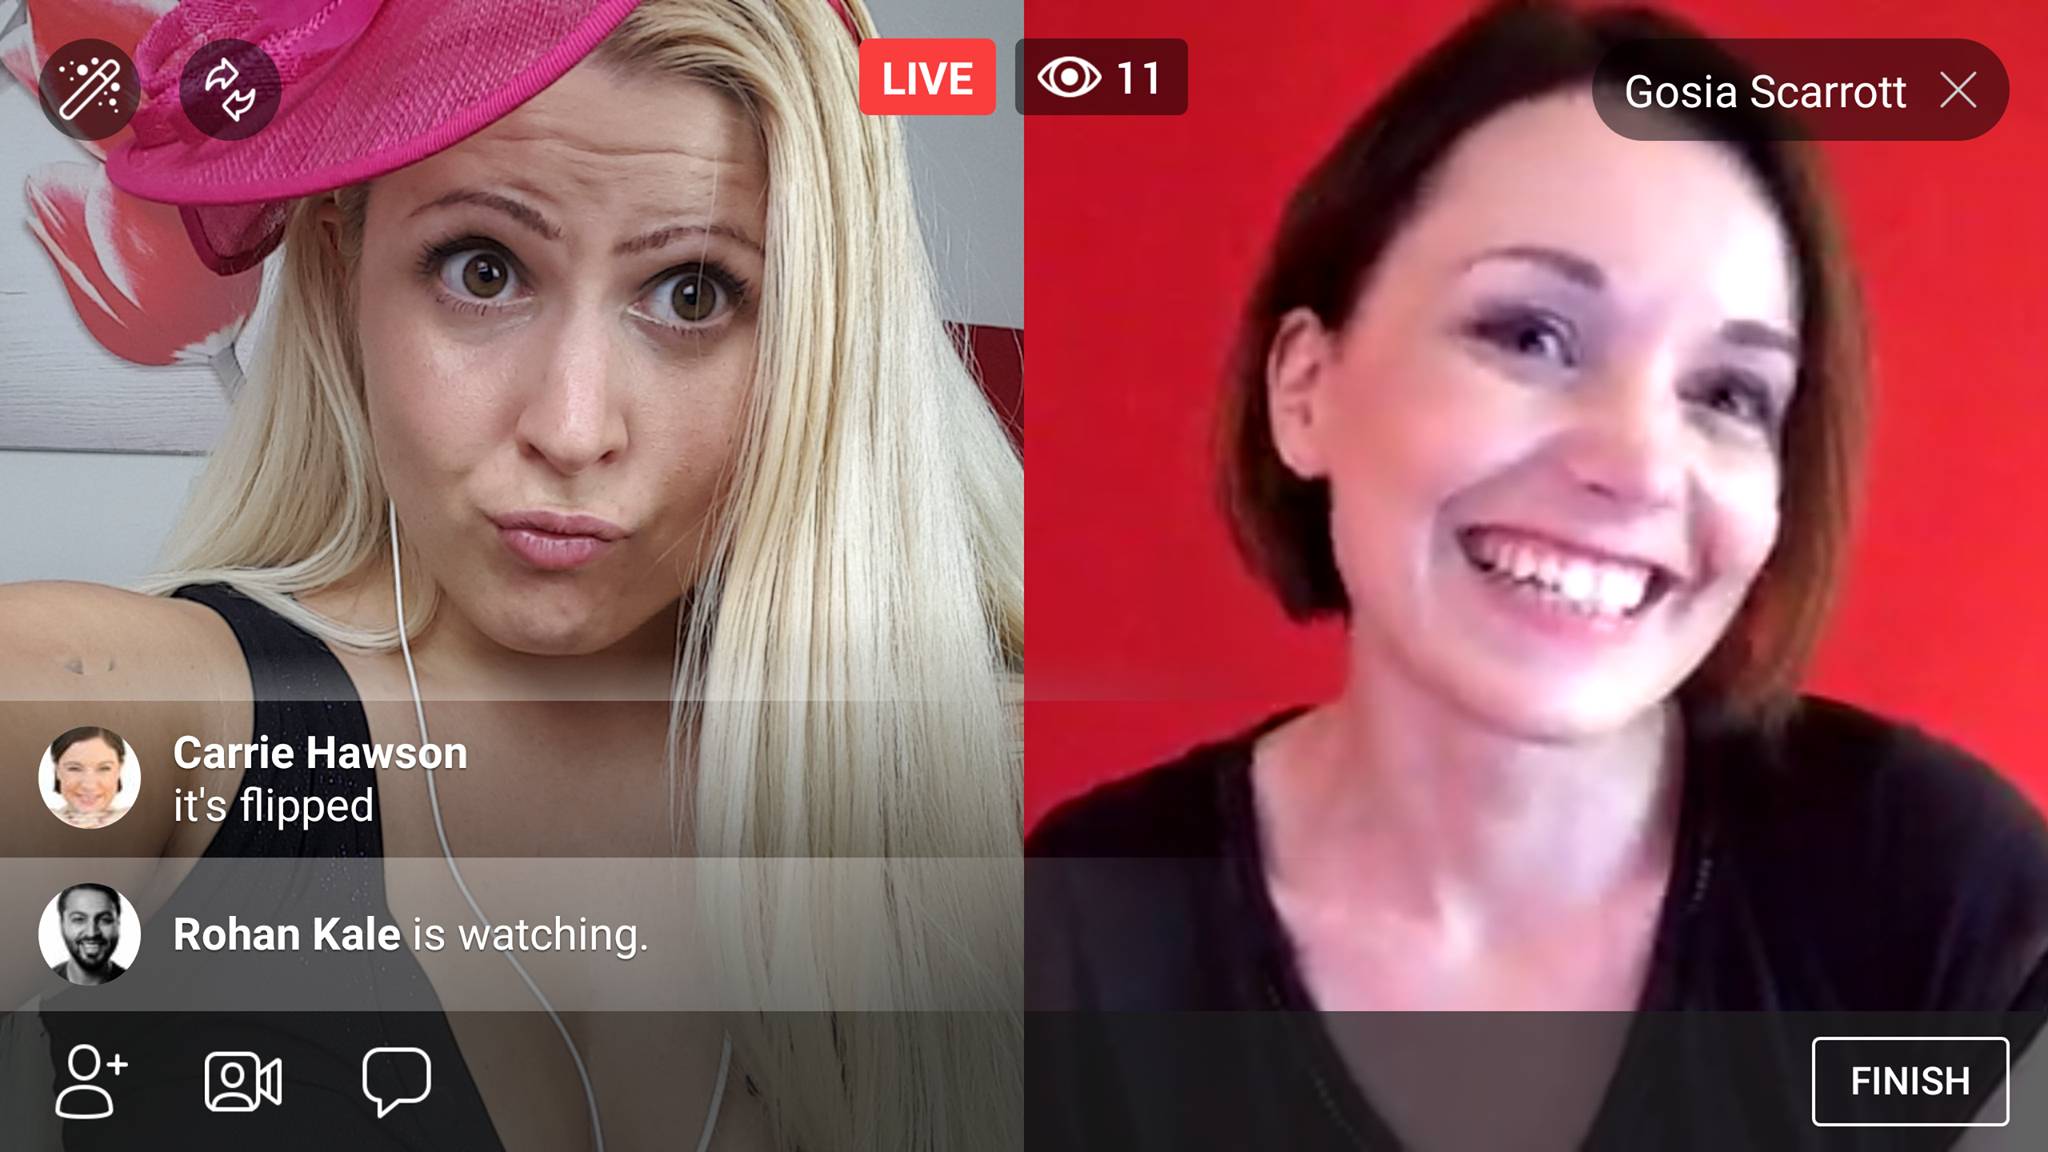 How to Do Split-Screen Interviews on Facebook Live w/o 3rd Party Service